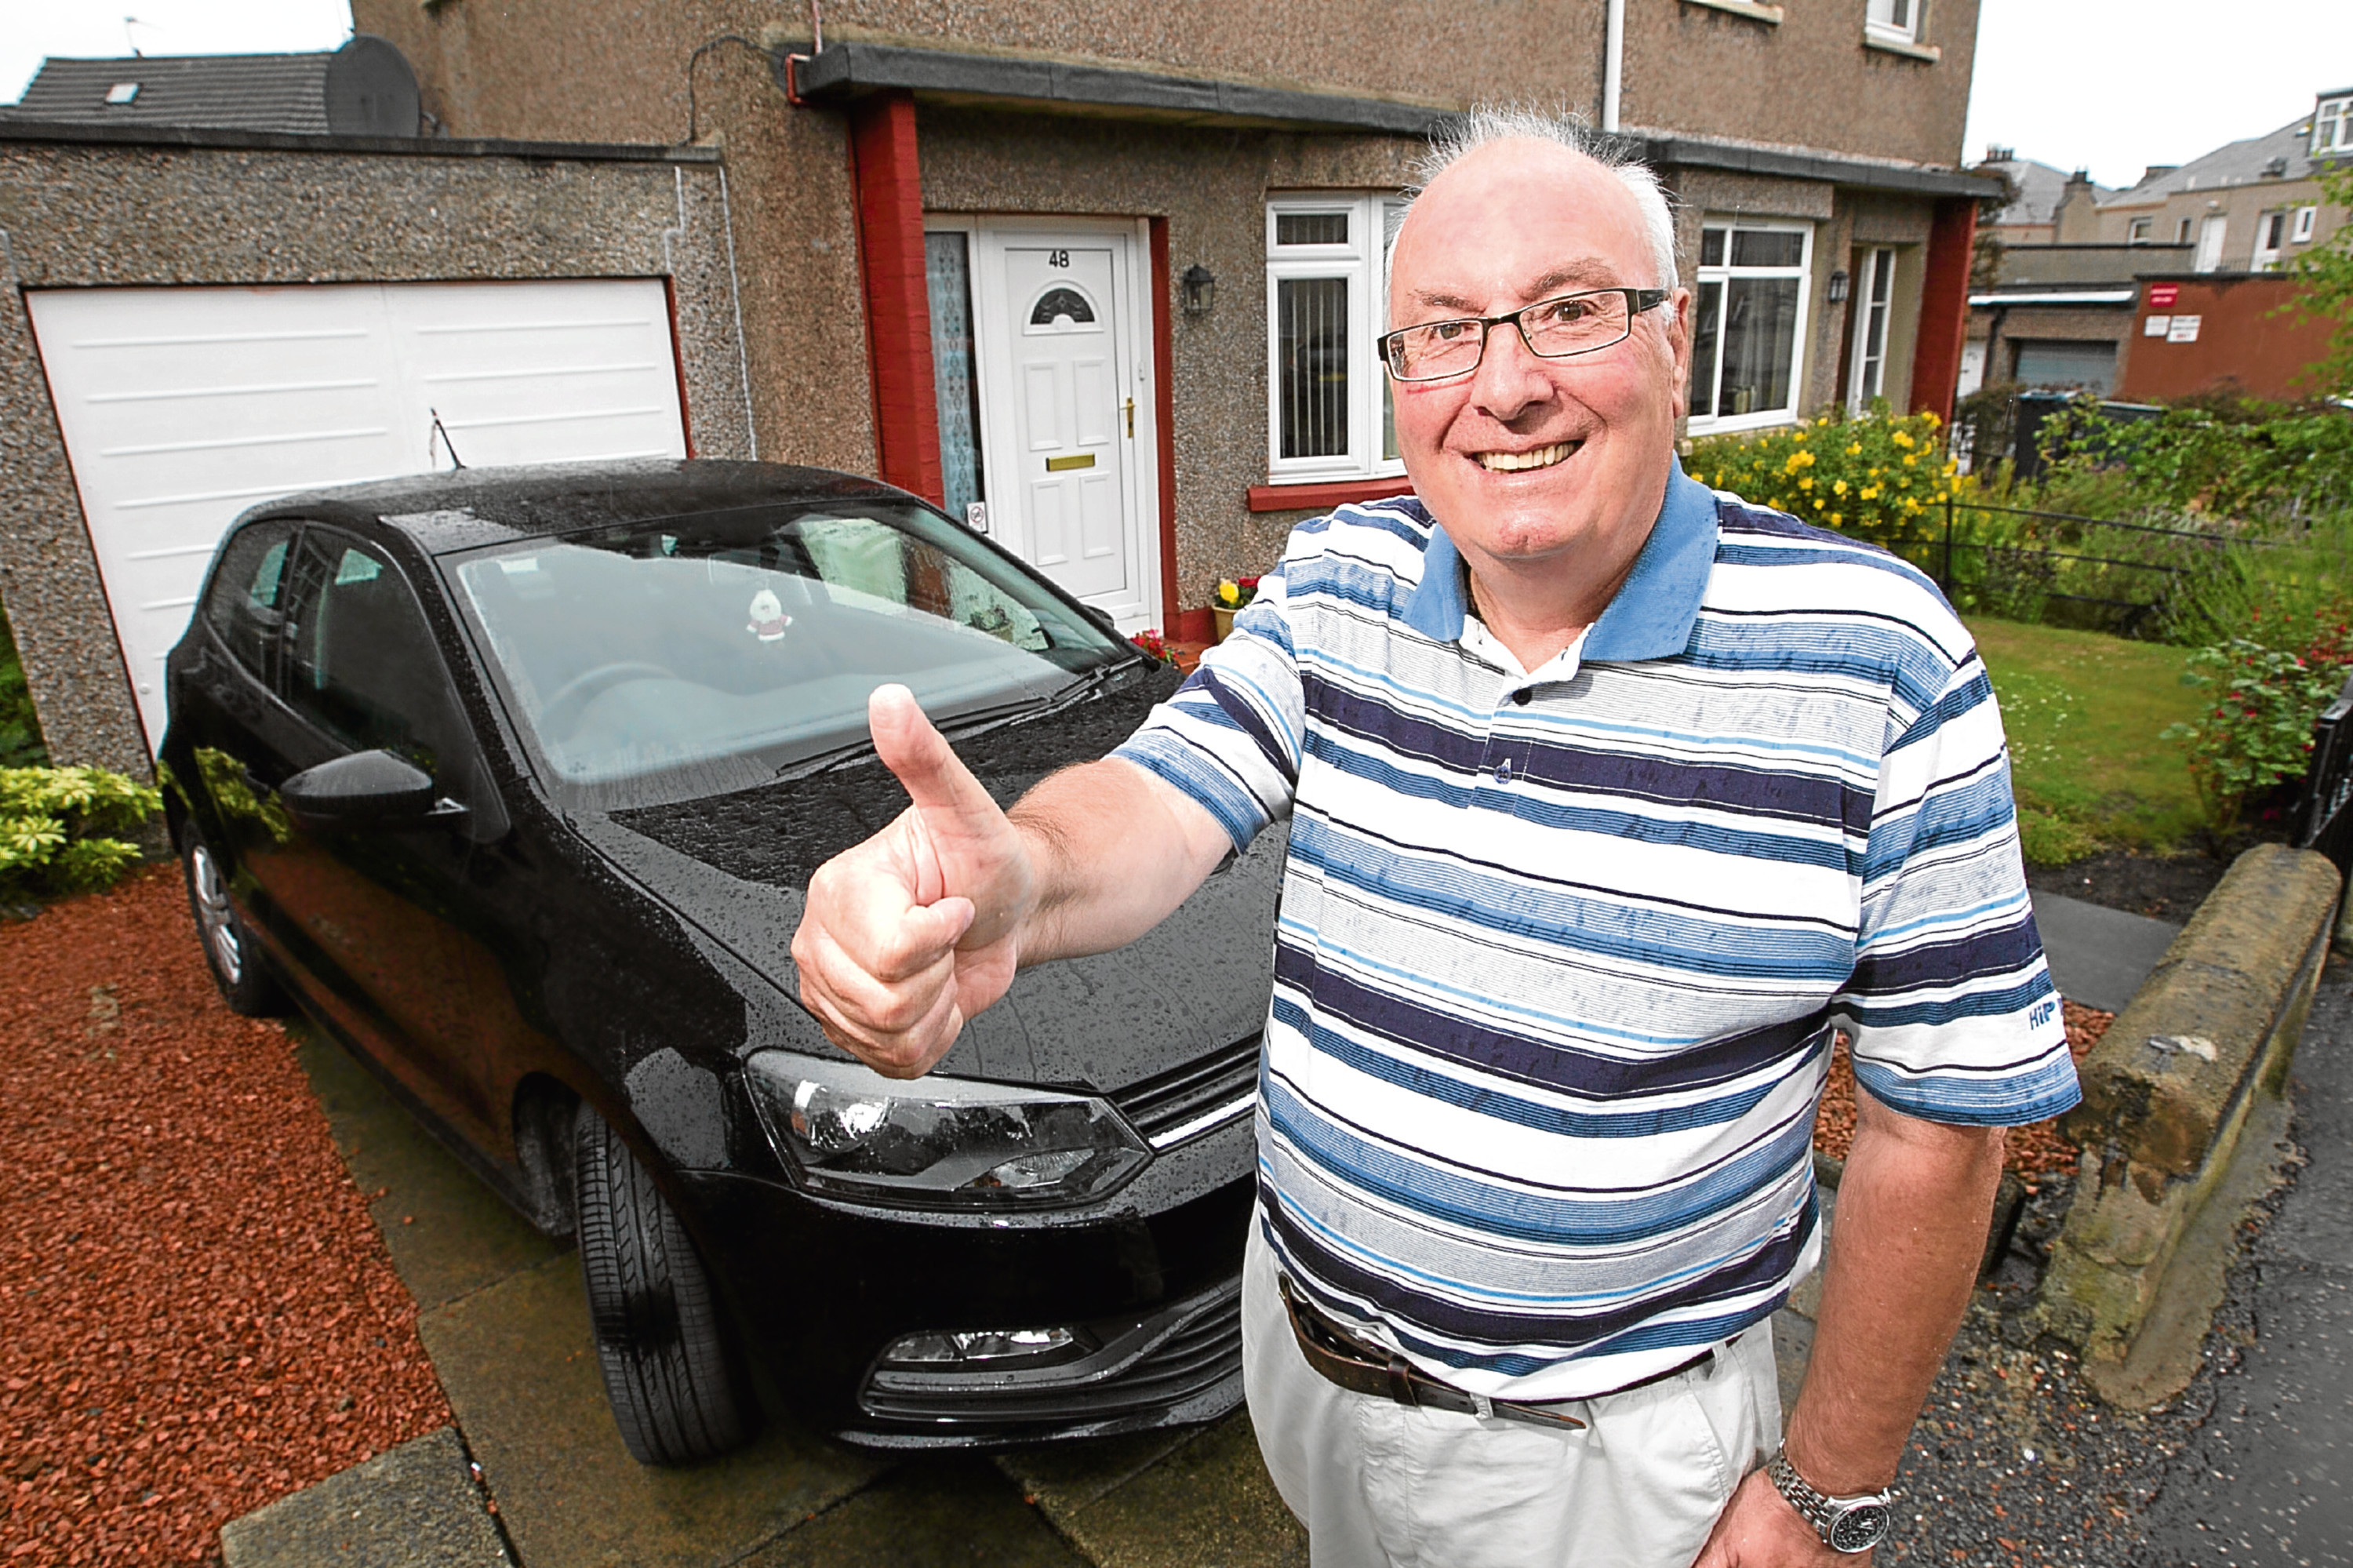 Archie Telford is happy after Raw Deal helped him with a parking fine (Andrew Cawley / DC Thomson)